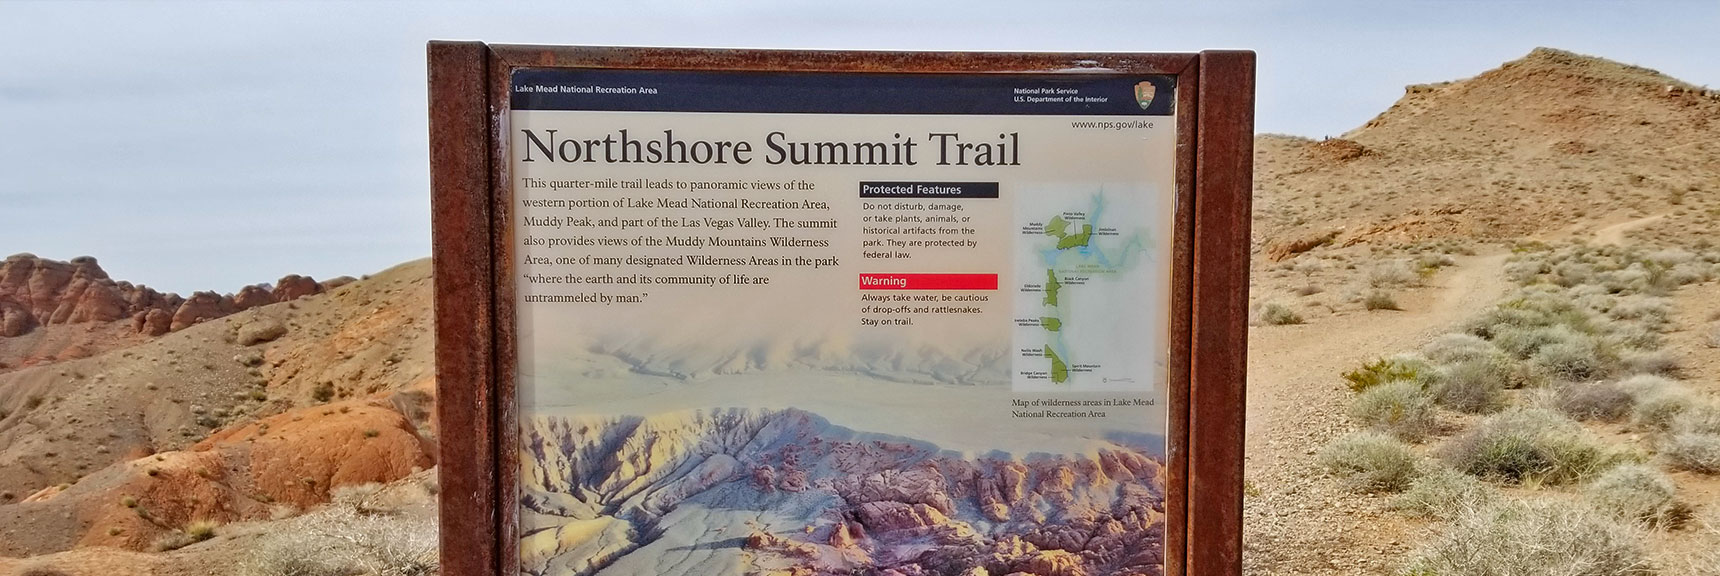 Northshore Summit Trail On Northshore Road in Lake Mead National Park, Nevada